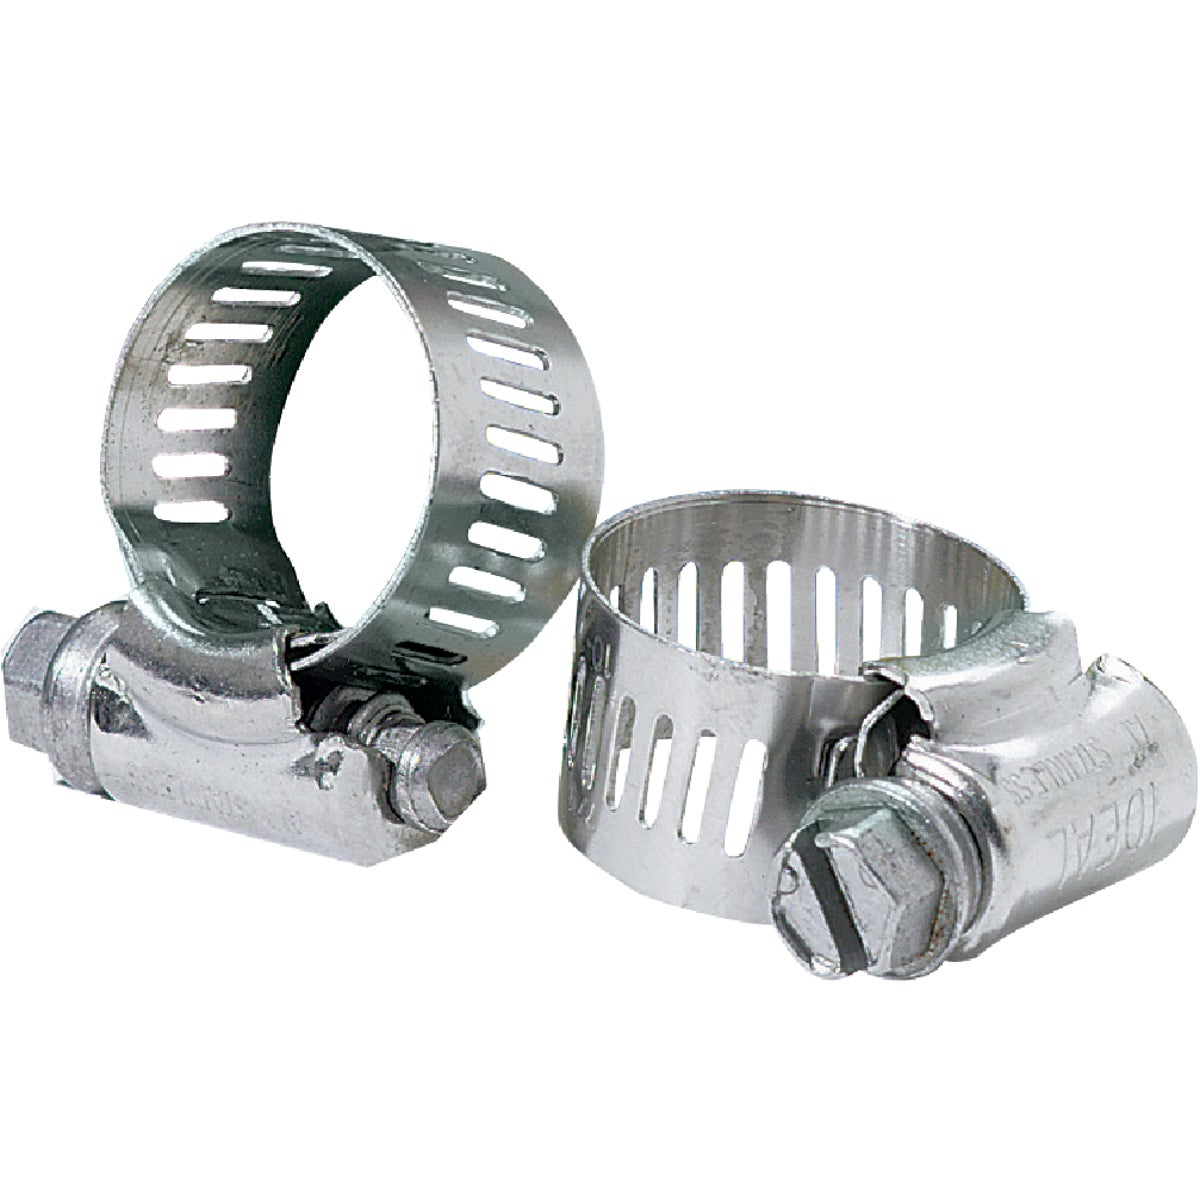 "3-1/2"" TO 5-1/2"" CLAMP - 6780153 by Ideal Corp"